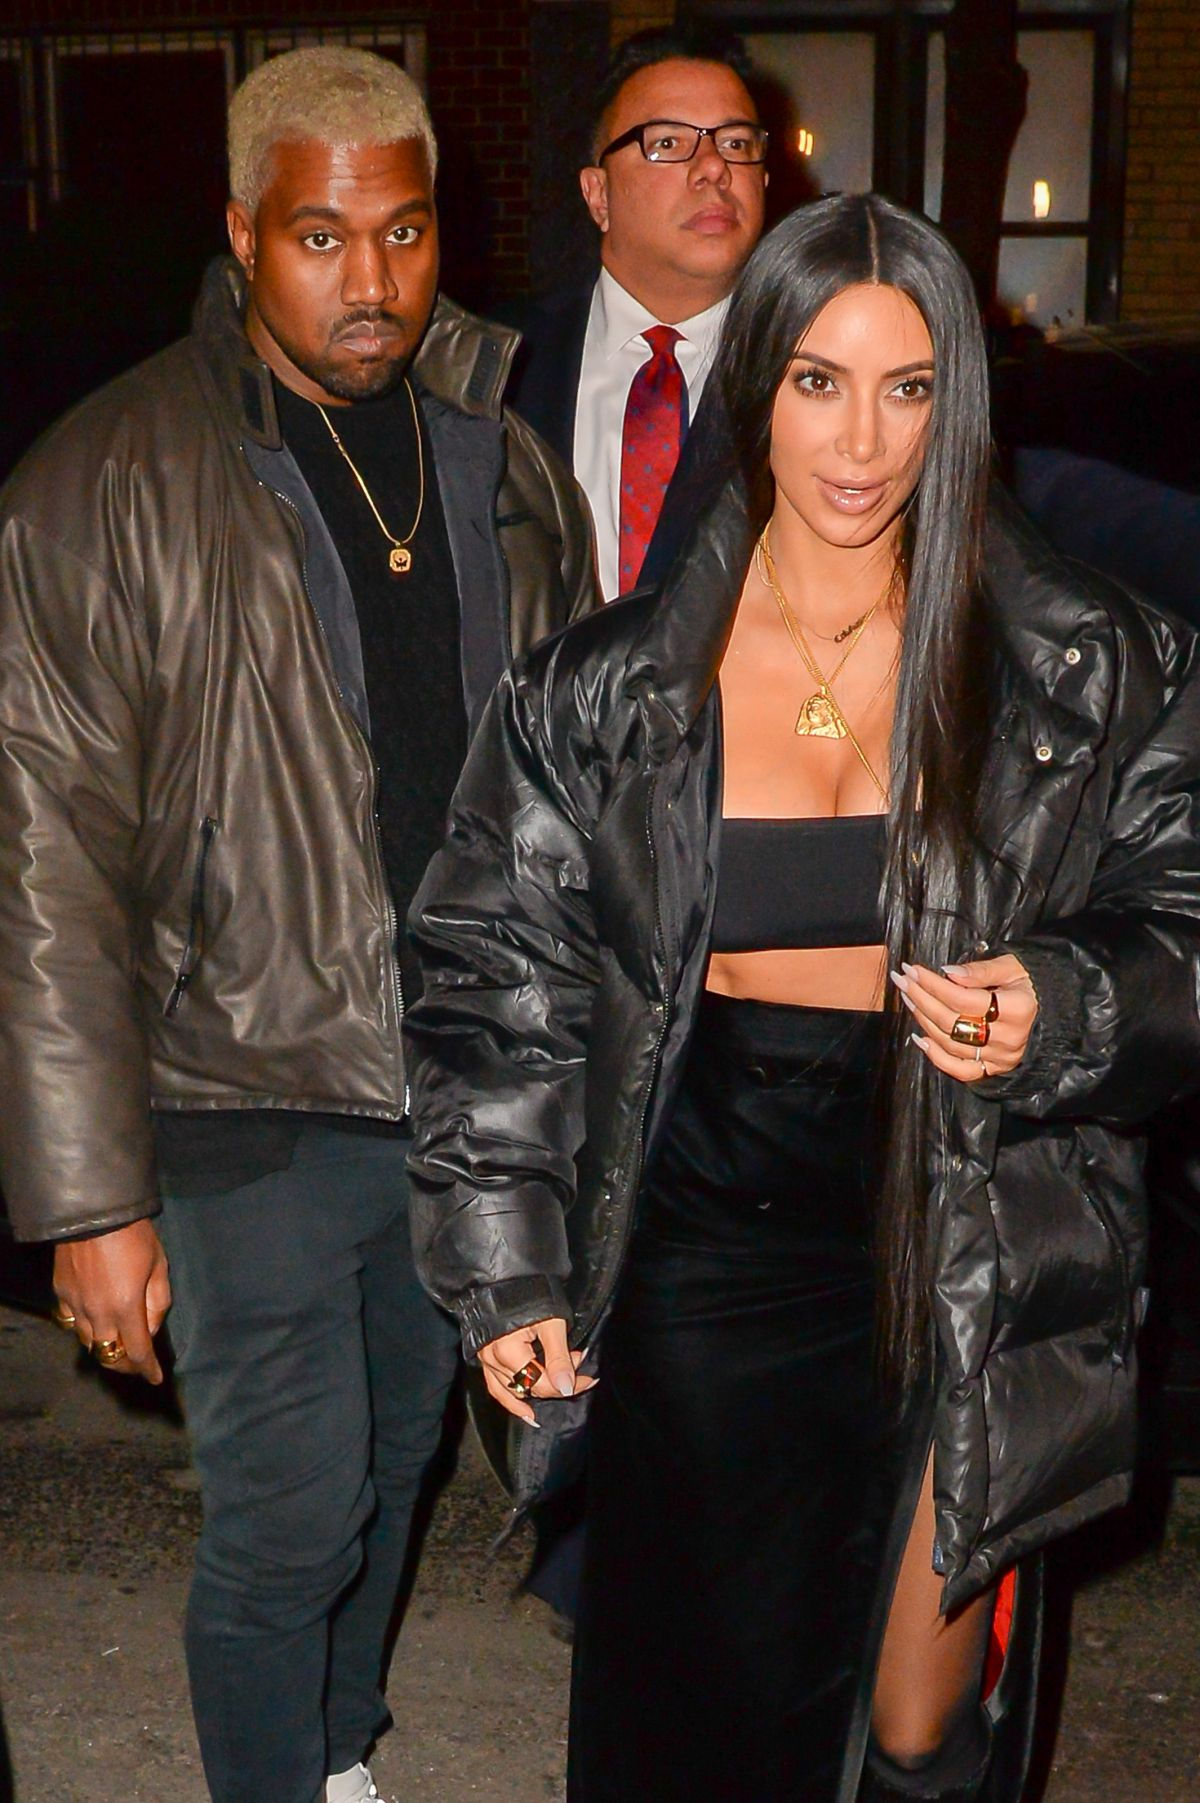 KIM KARDASHIAN and Kanye West Out for Dinner in New York 02/14/2017